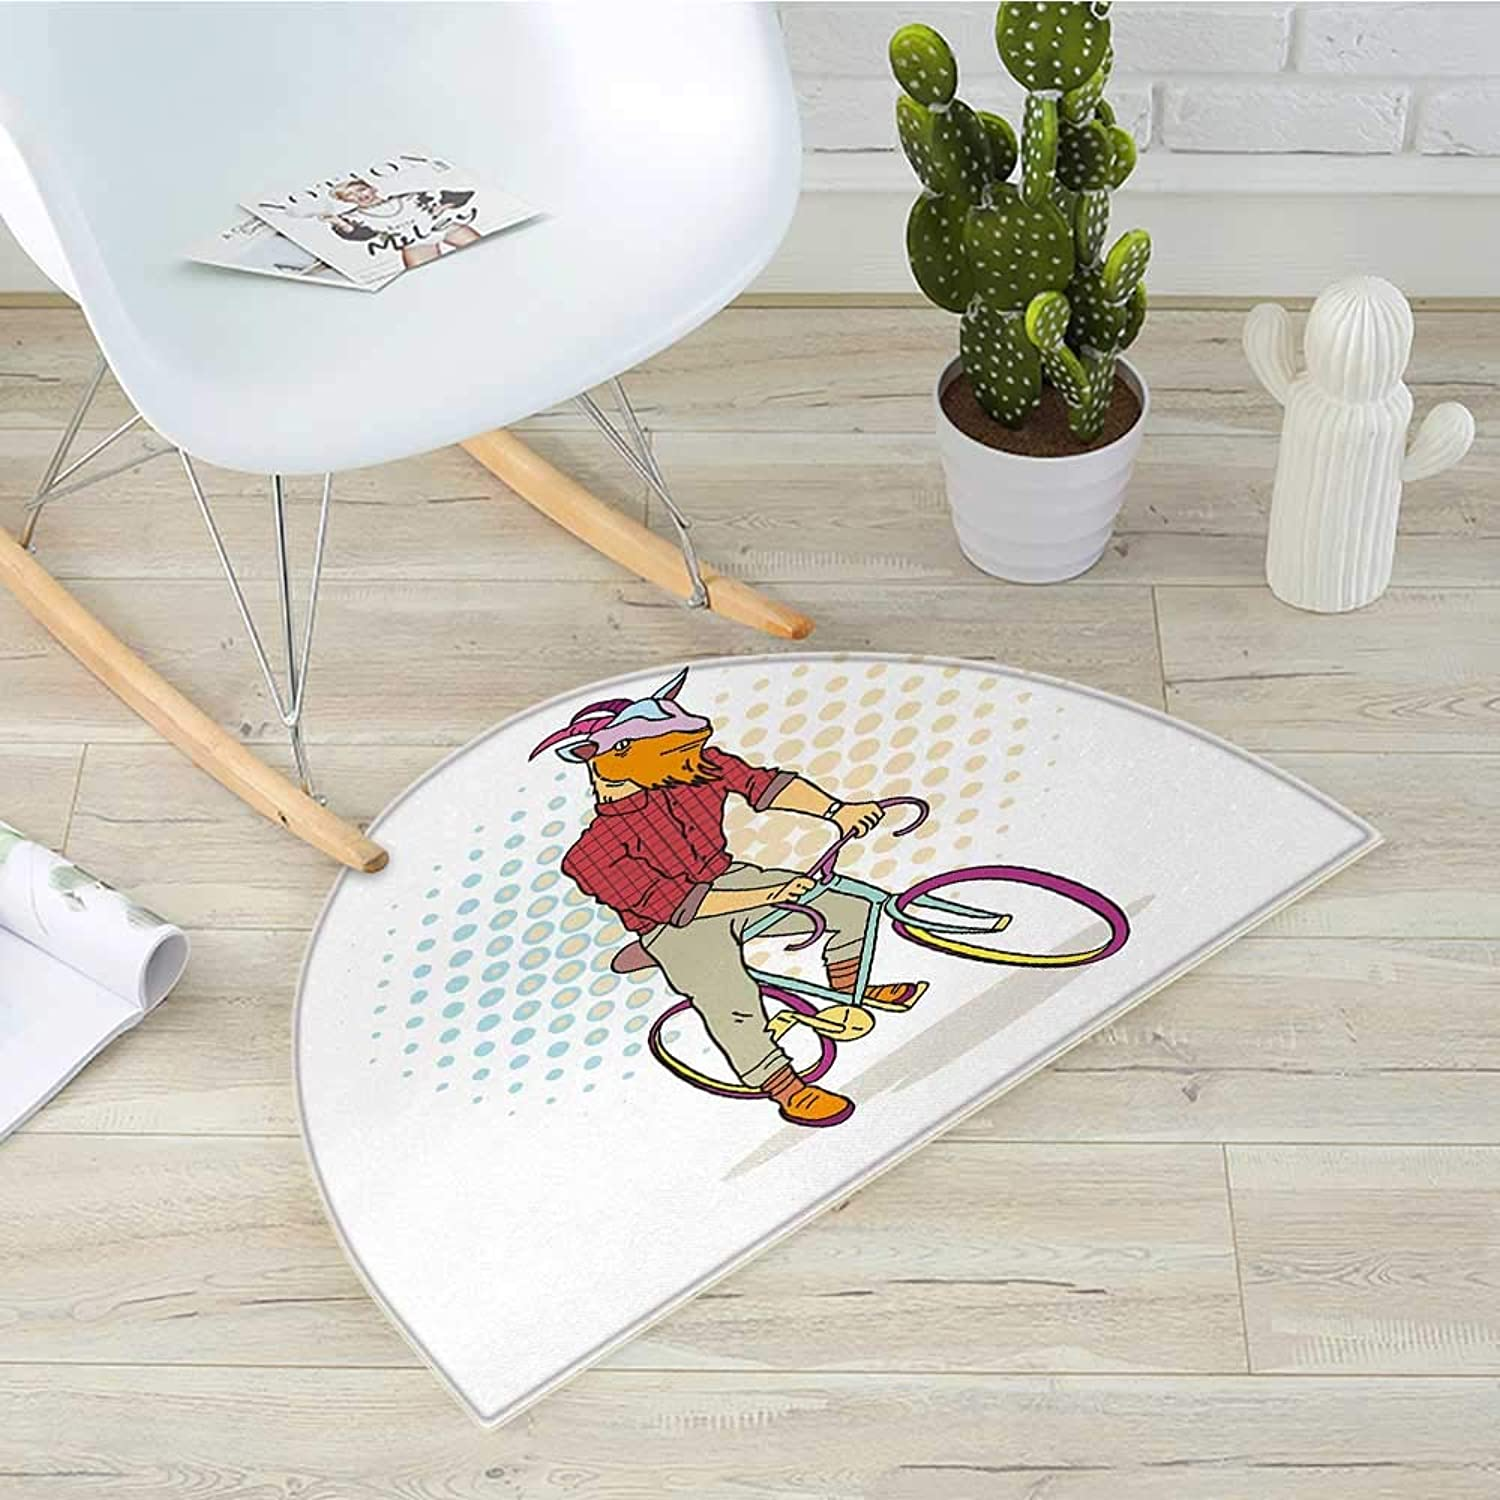 Retro Semicircular CushionHipster Goat on Bicycle Fashion Model Horns Hooves Teenager Boy colorful Artwork Entry Door Mat H 43.3  xD 64.9  Multicolor